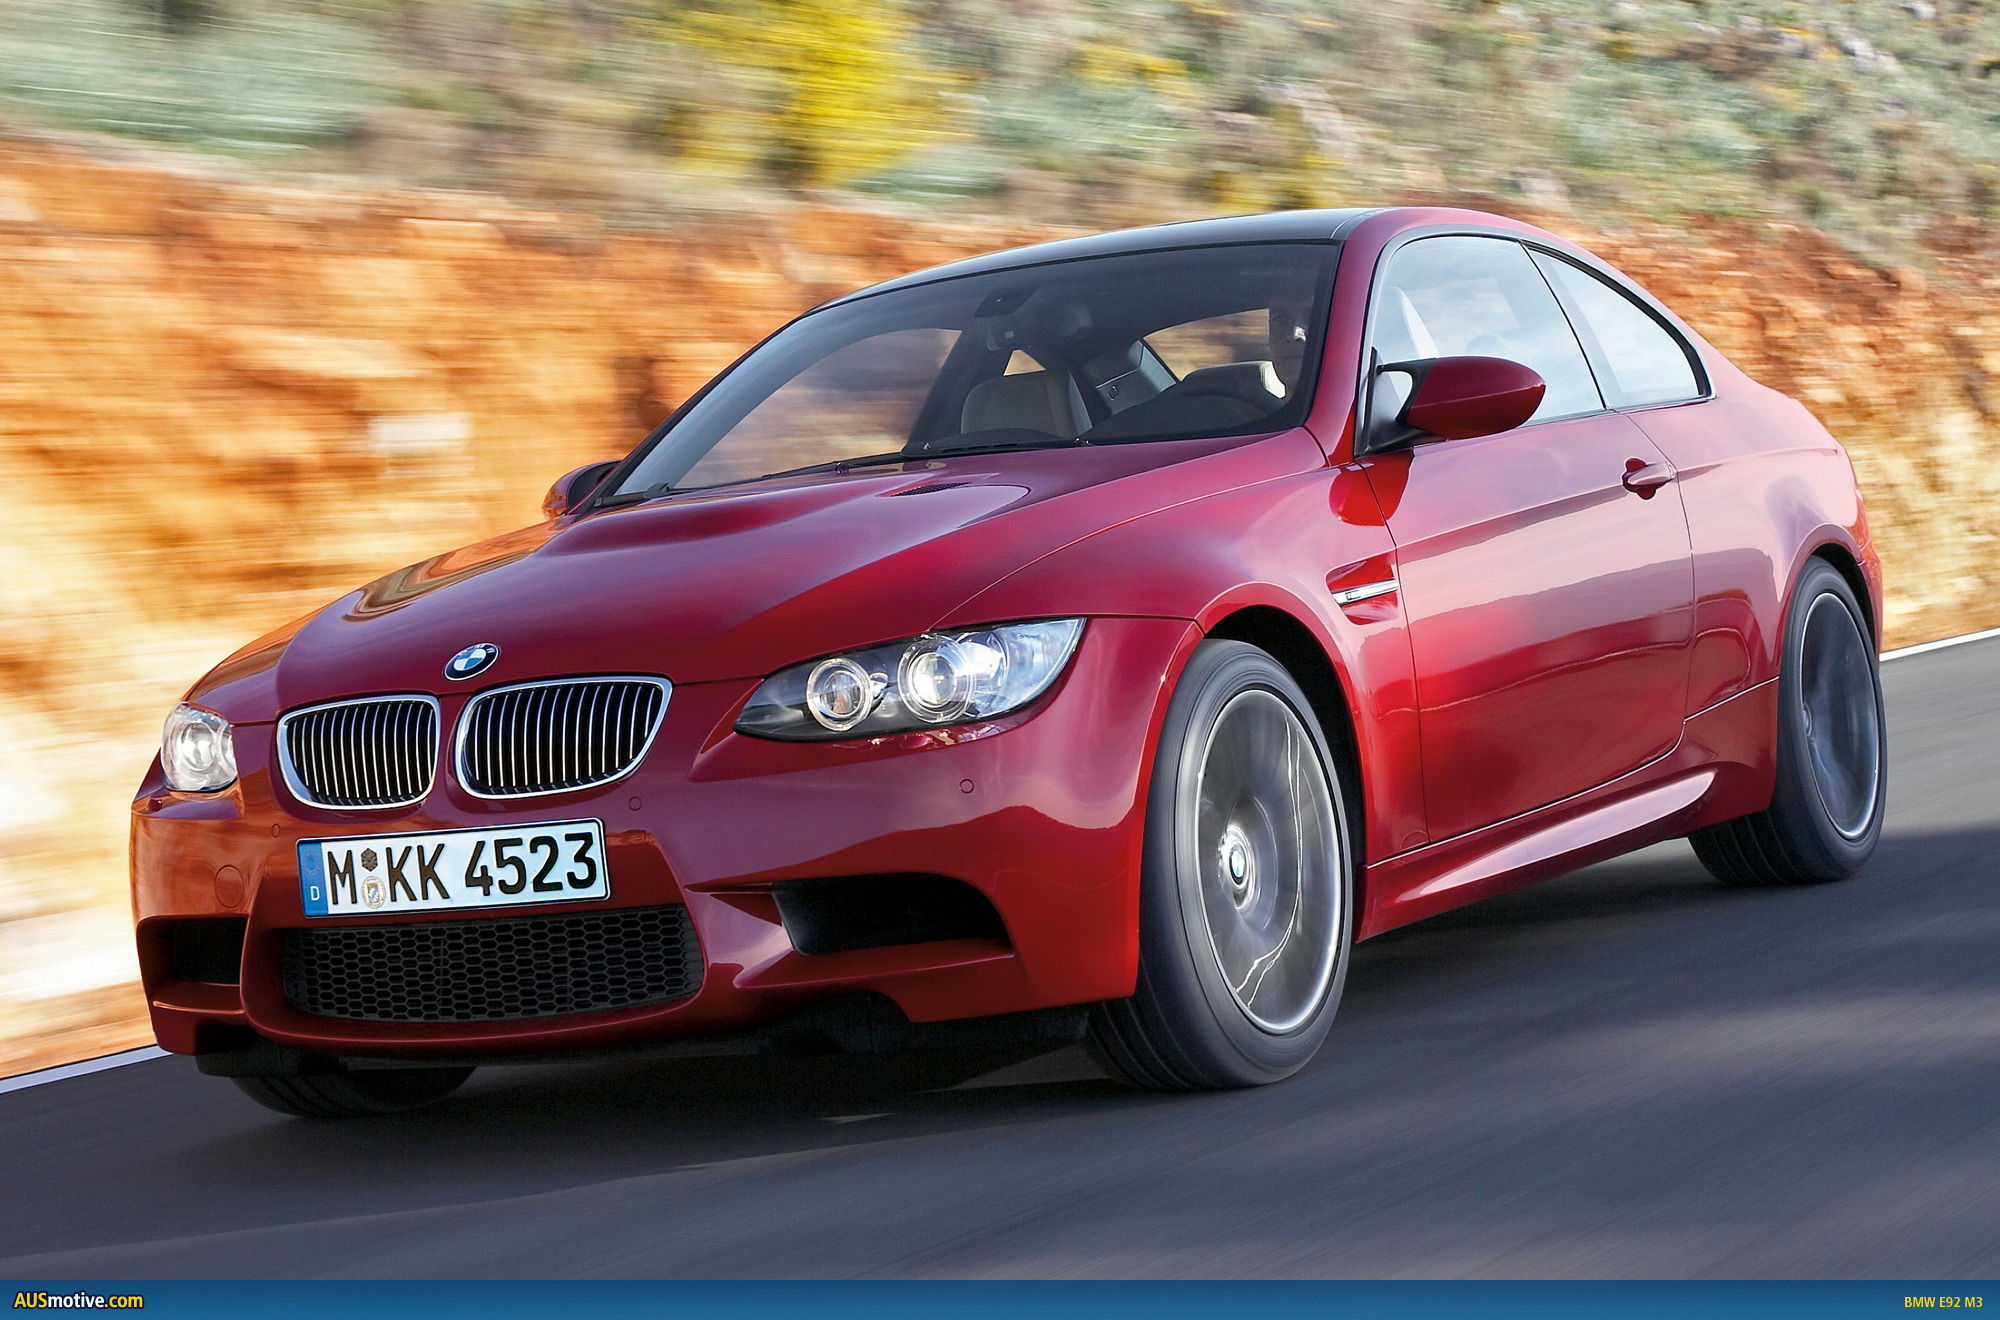 AUSmotive.com » 25 years of the BMW M3